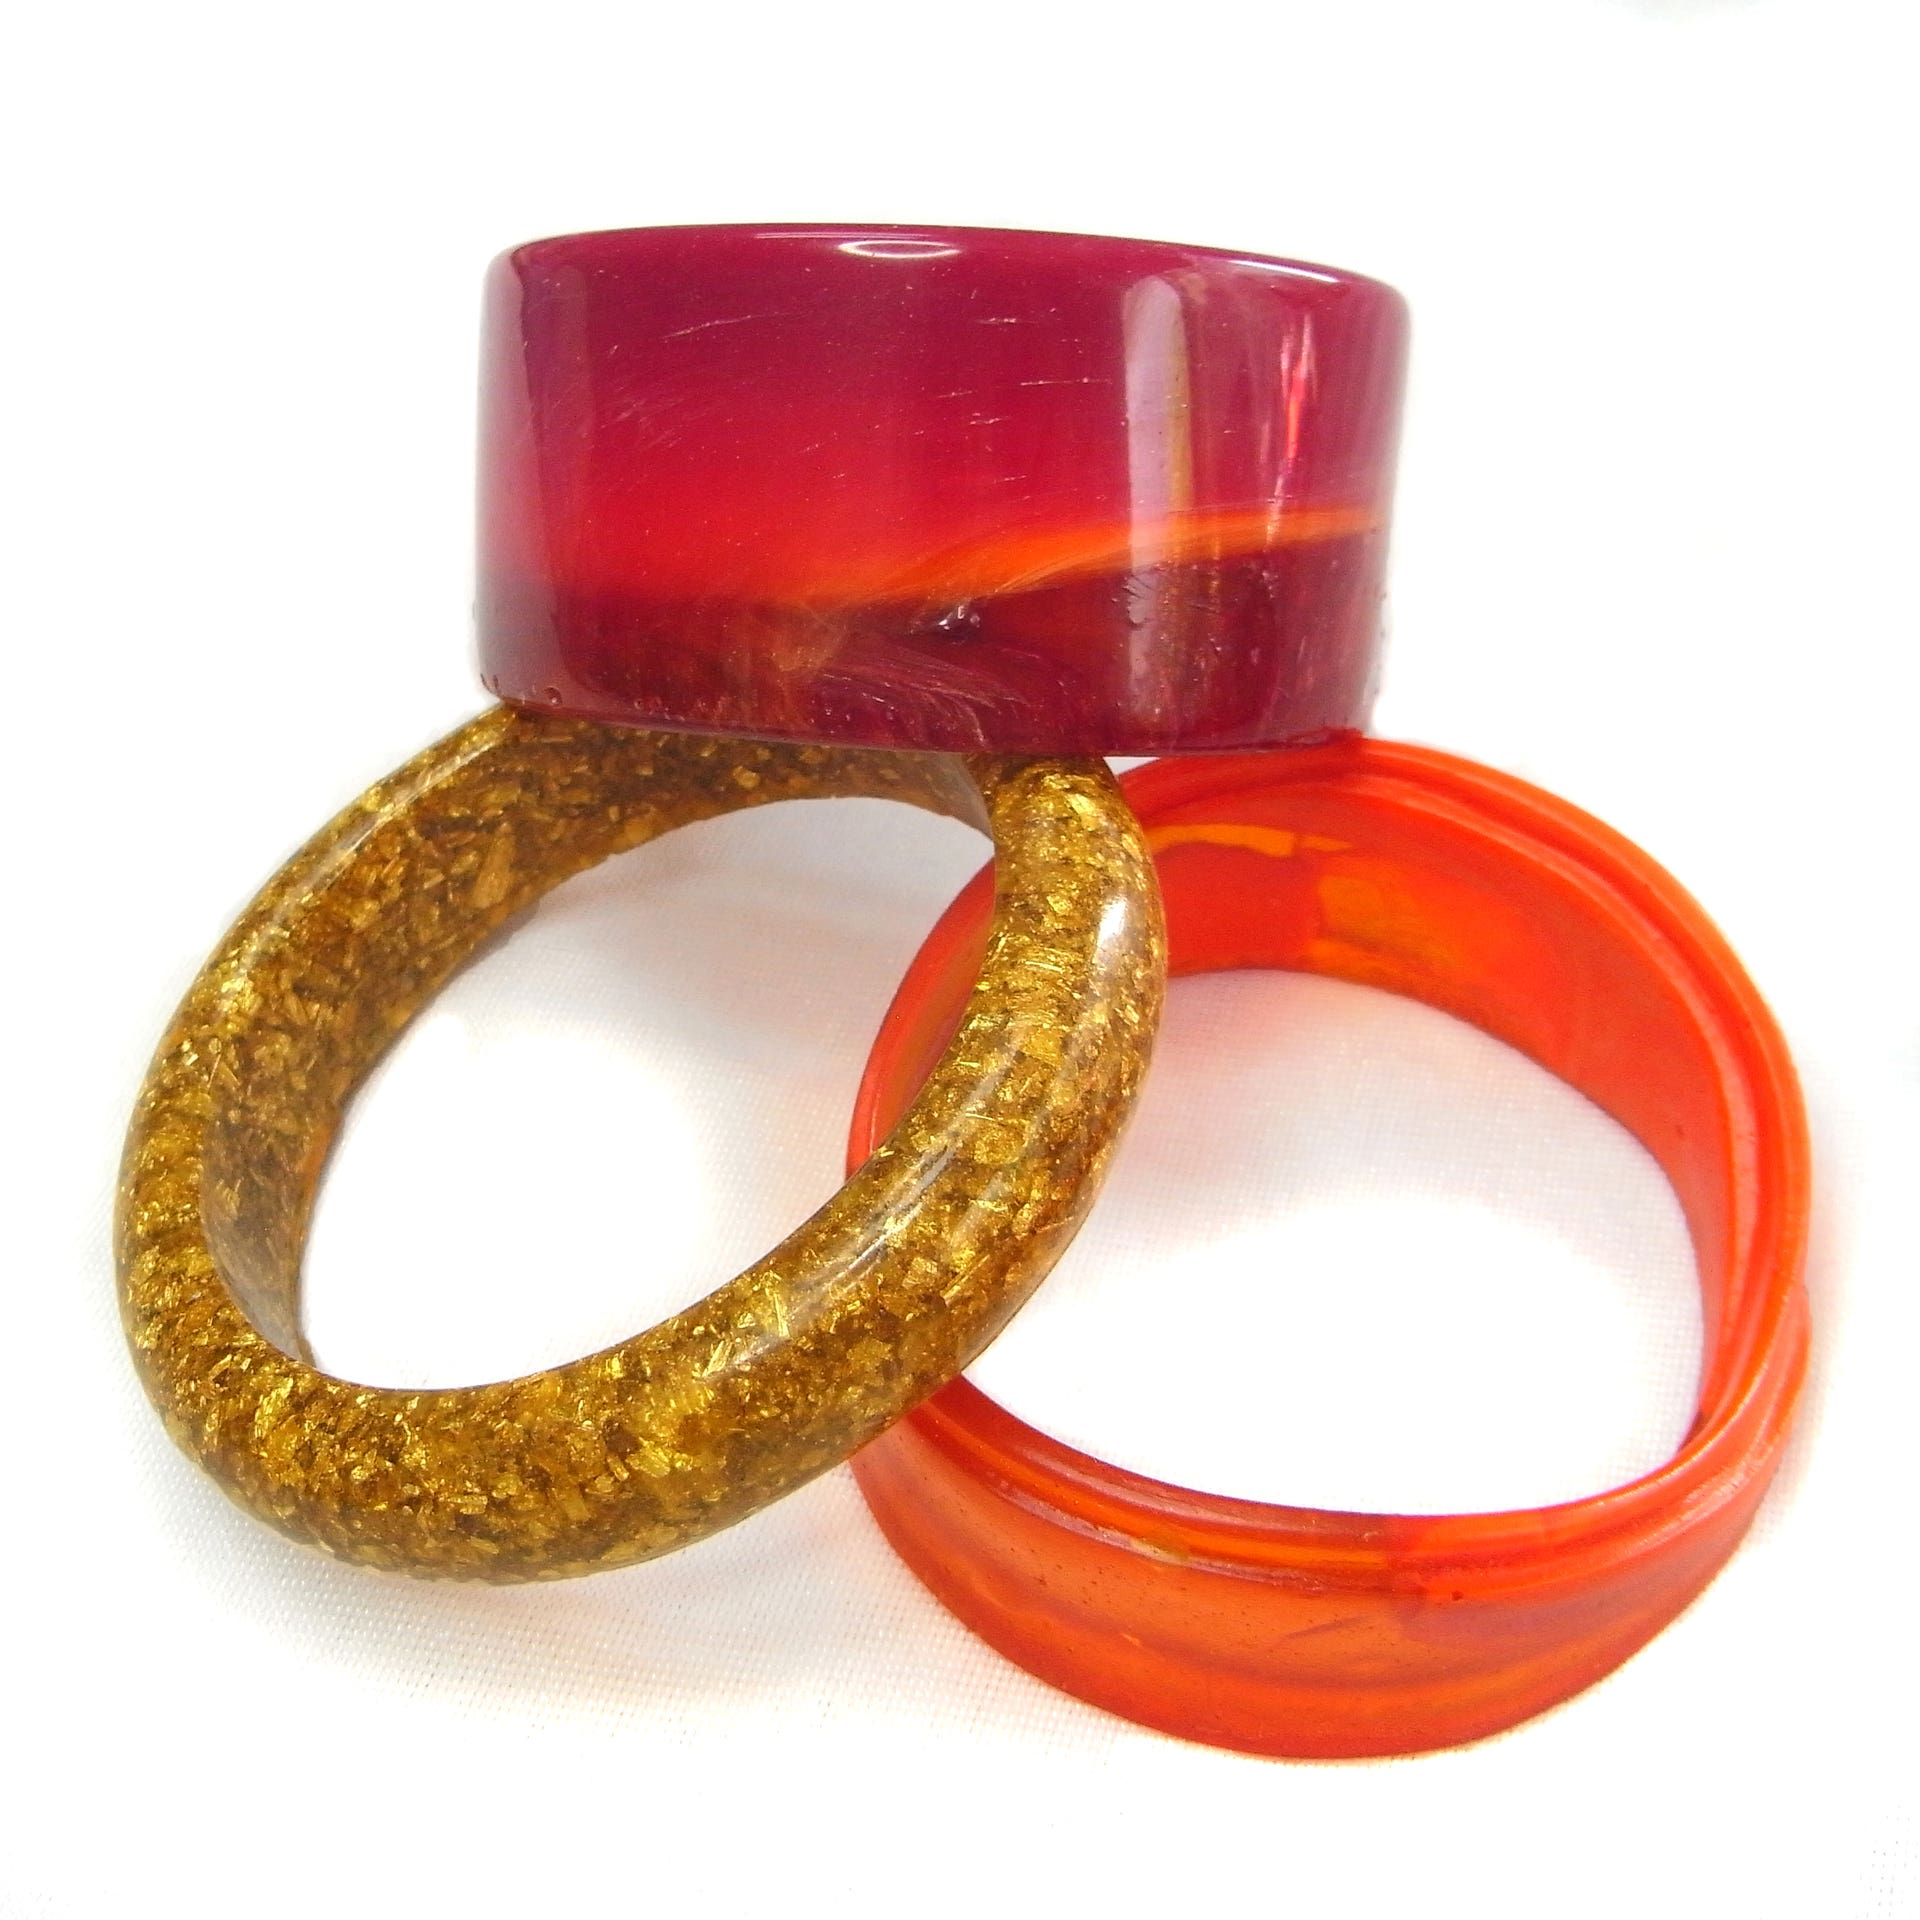 Stack of 3 resin bangles in shades of burgundy, orange and gold